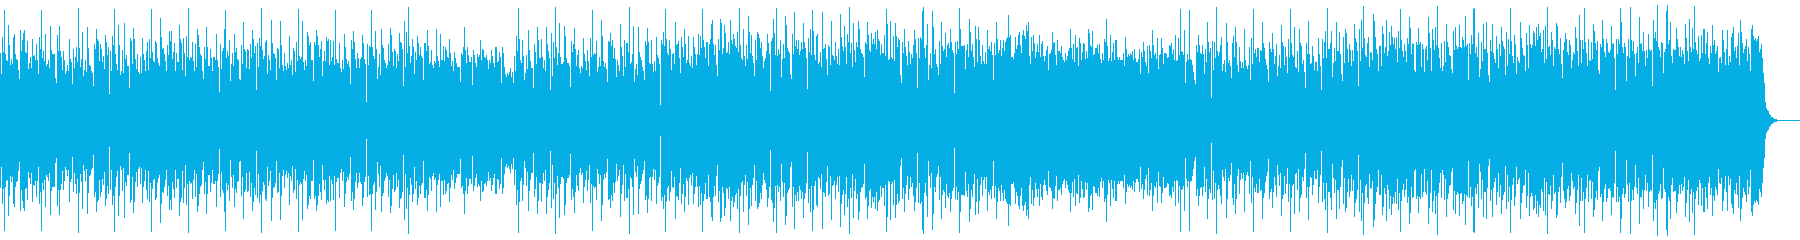 Refreshing, transparent, beginning, acoustic guitar AD18's reproduced waveform